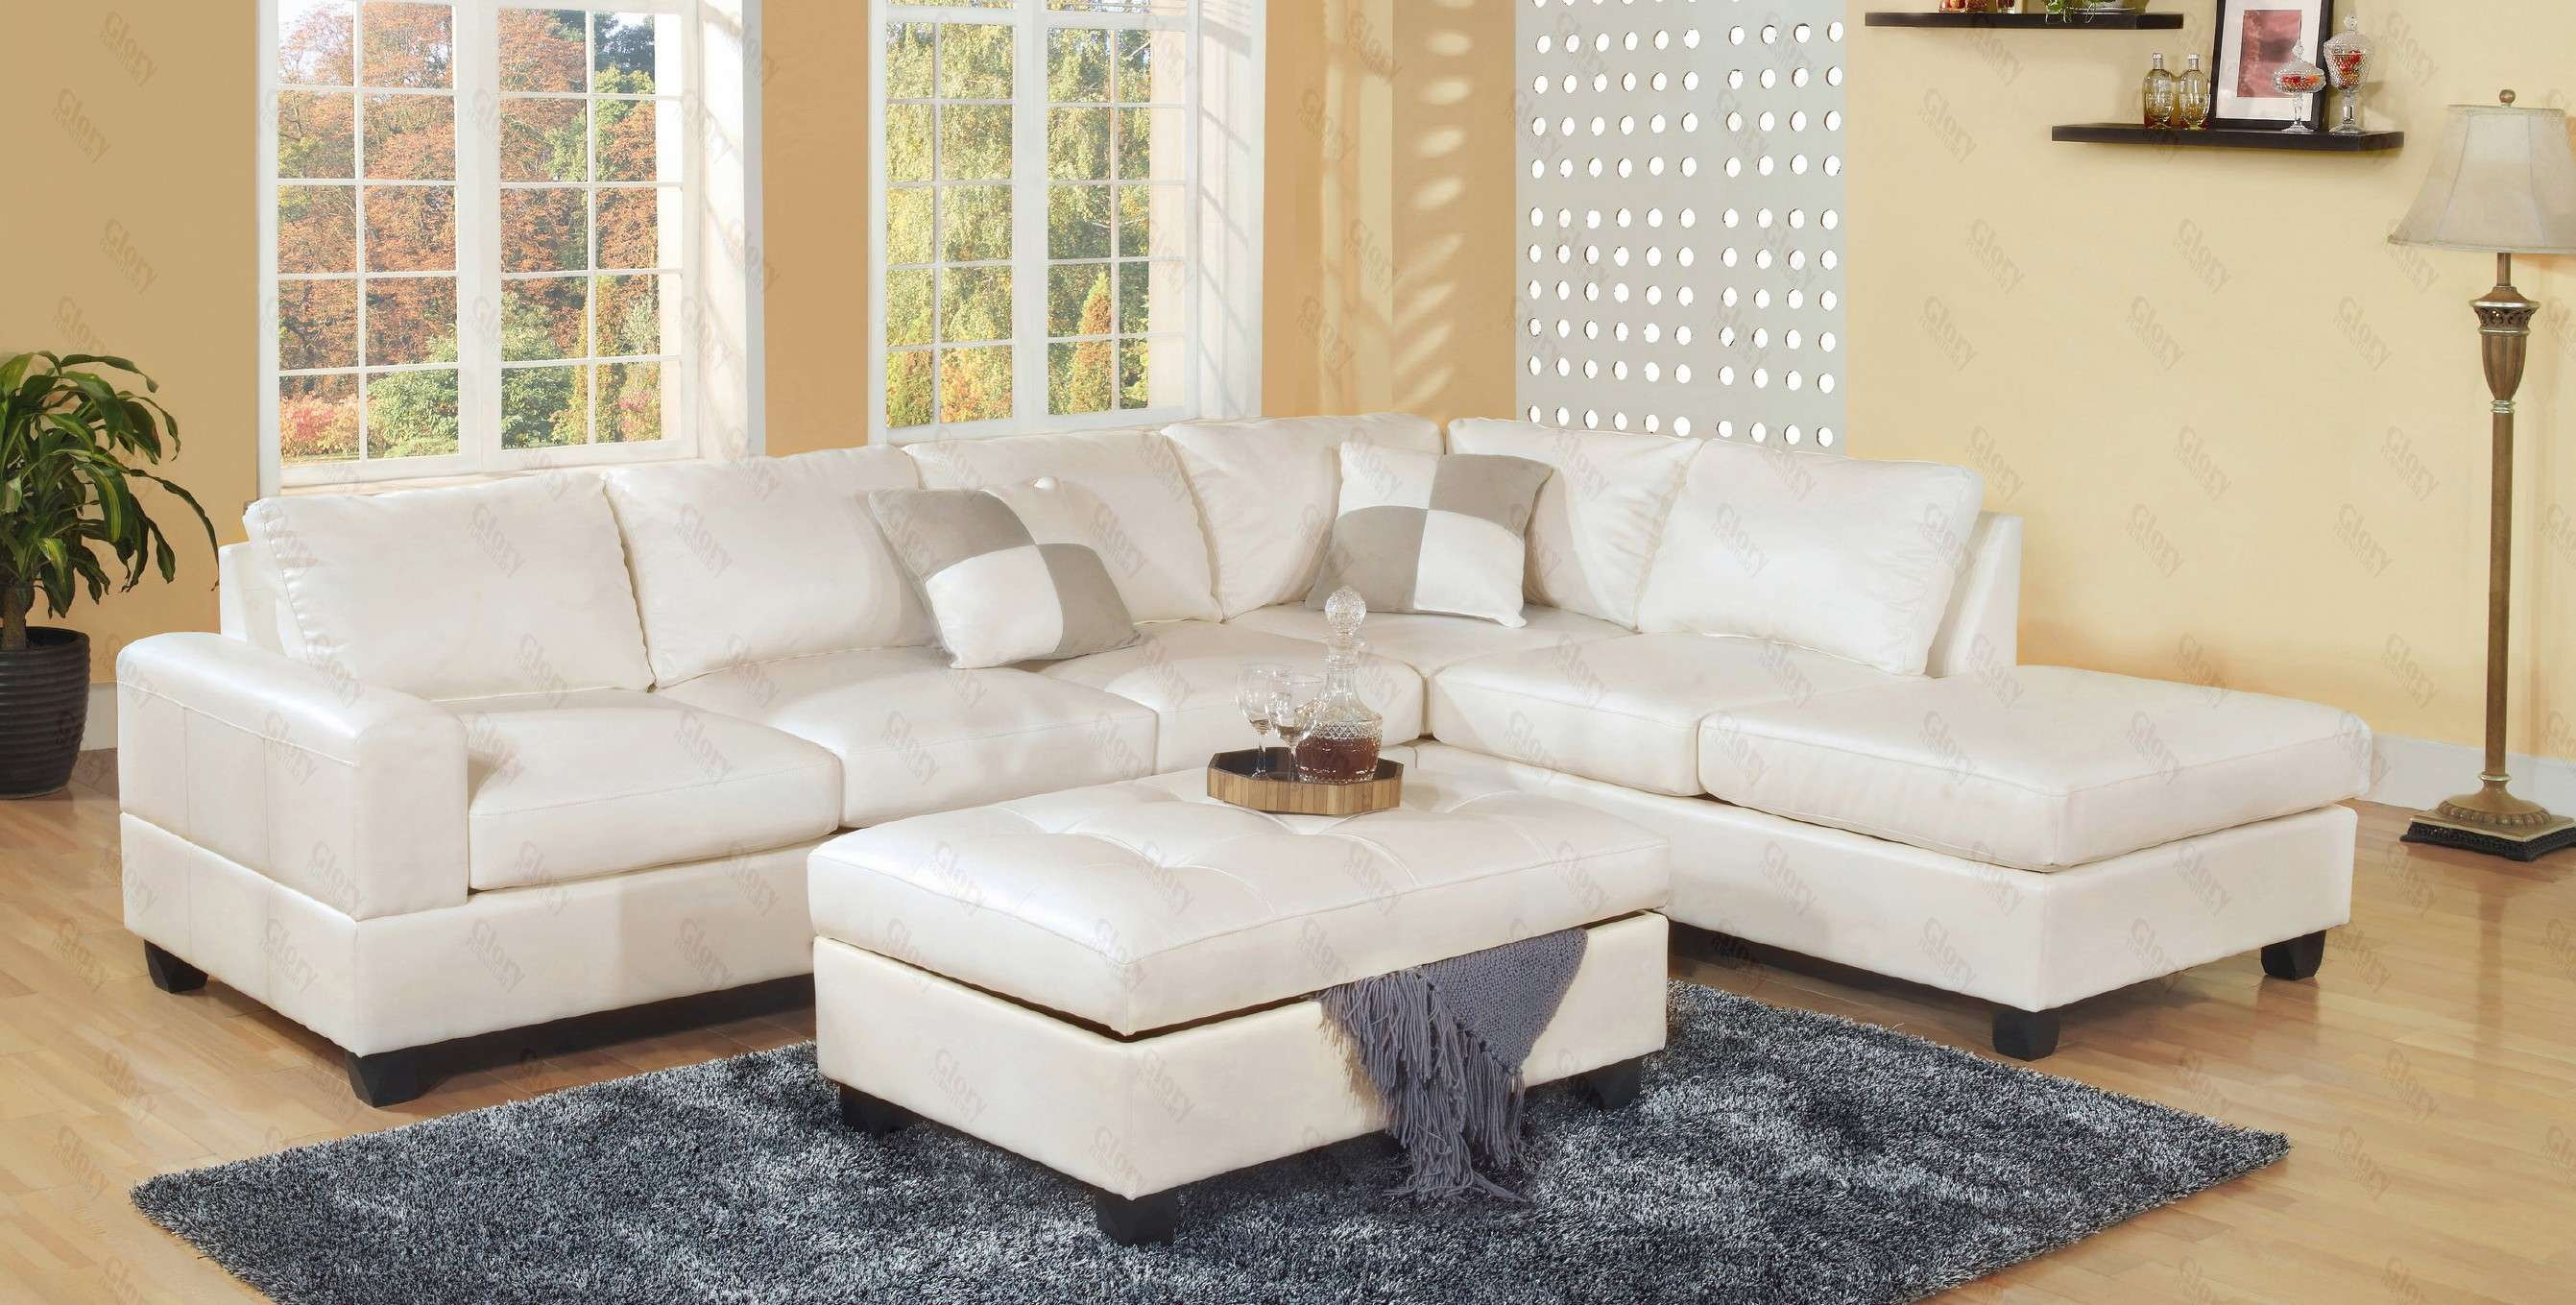 White Bonded Leather Sectional Sofa with Storage Ottoman